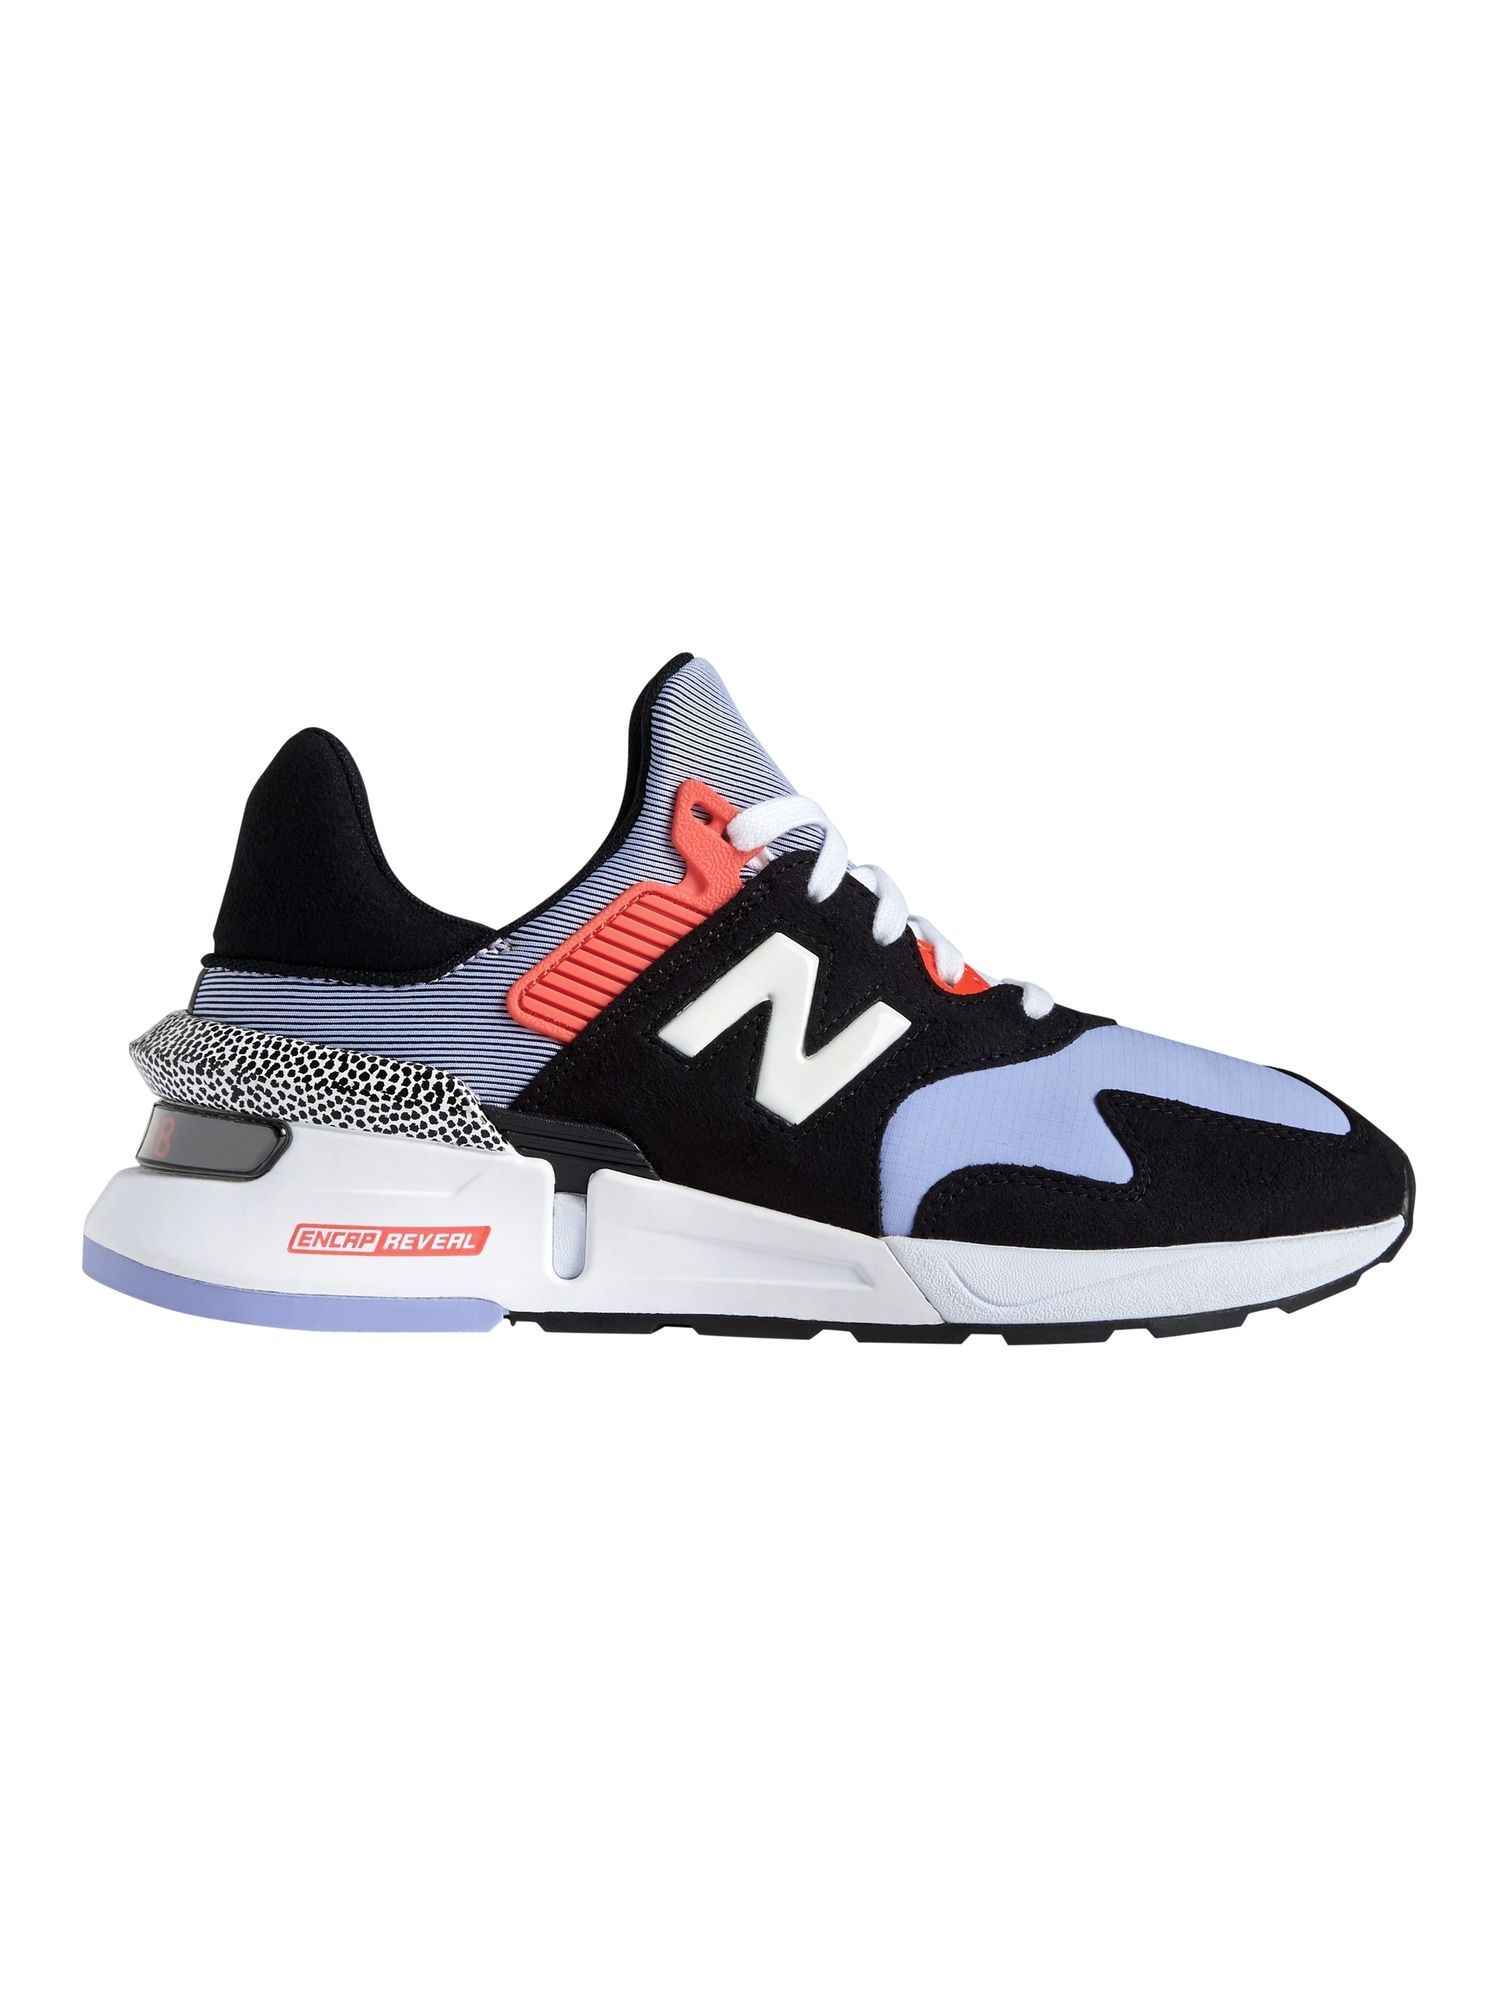 997 Sport Sneaker by New Balance® Sneakers, Shoes, Cute